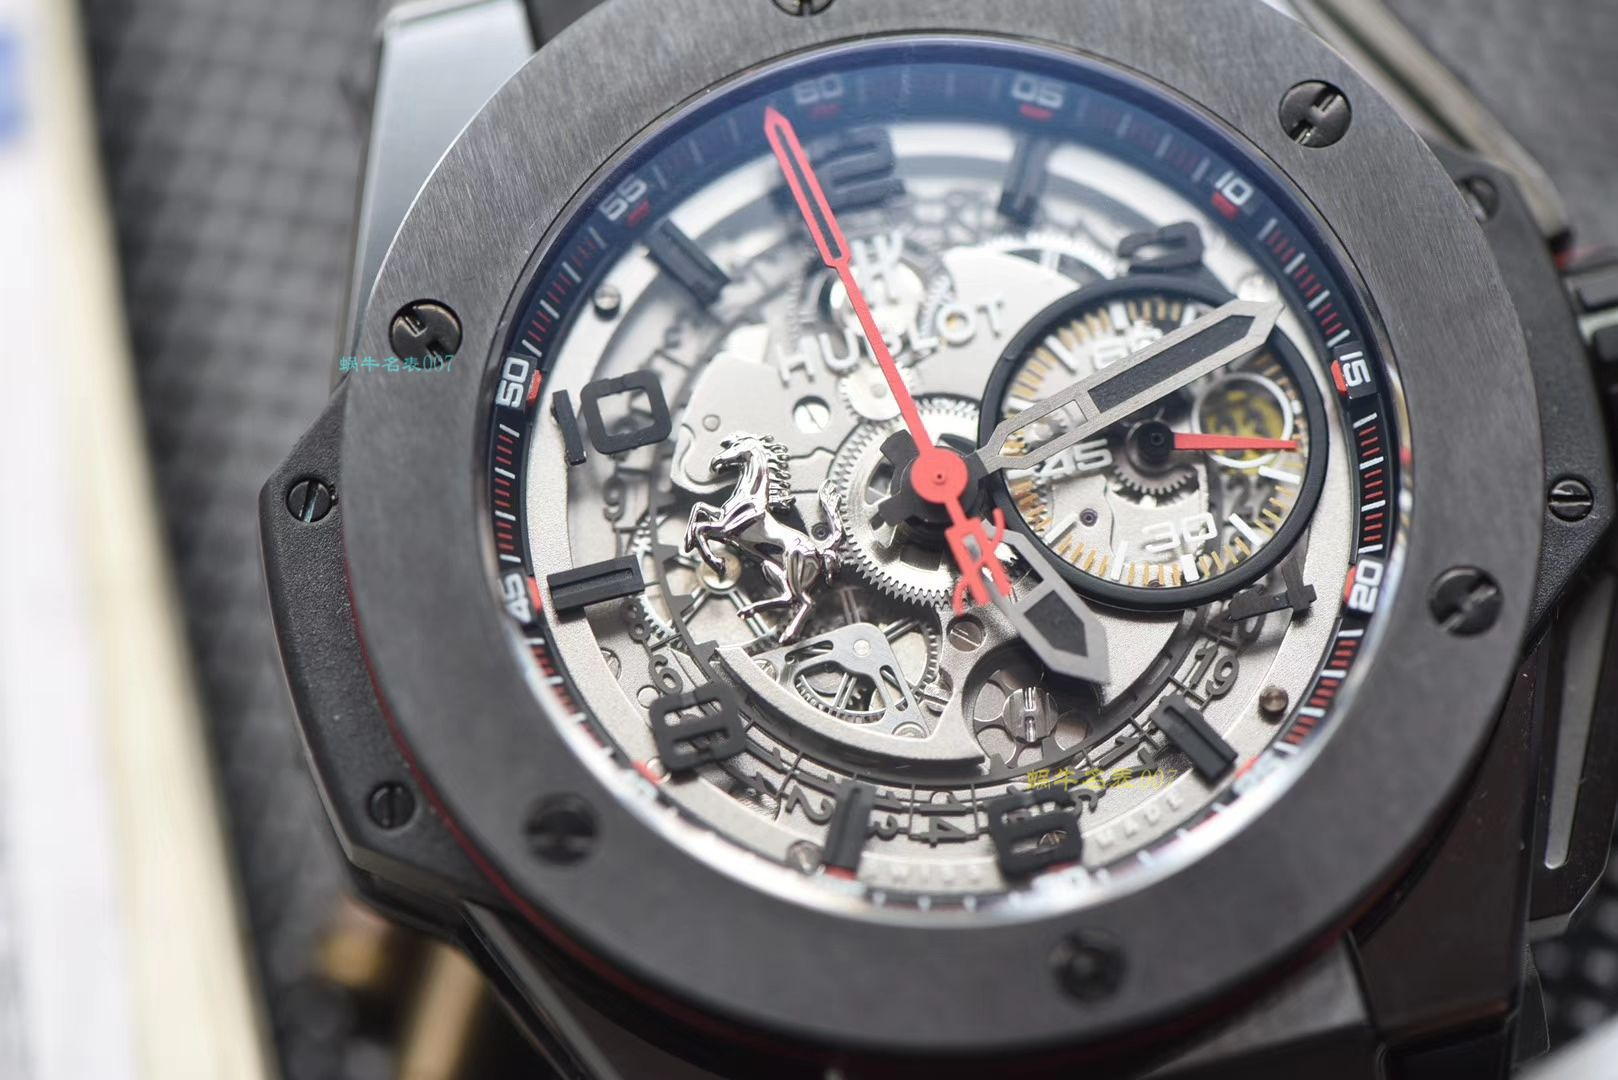 视频讲解V6厂复刻宇舶法拉利Hublot Big Bang Ferrari Ceramic F11系列401.CX.0123.VR腕表 / YB062V6